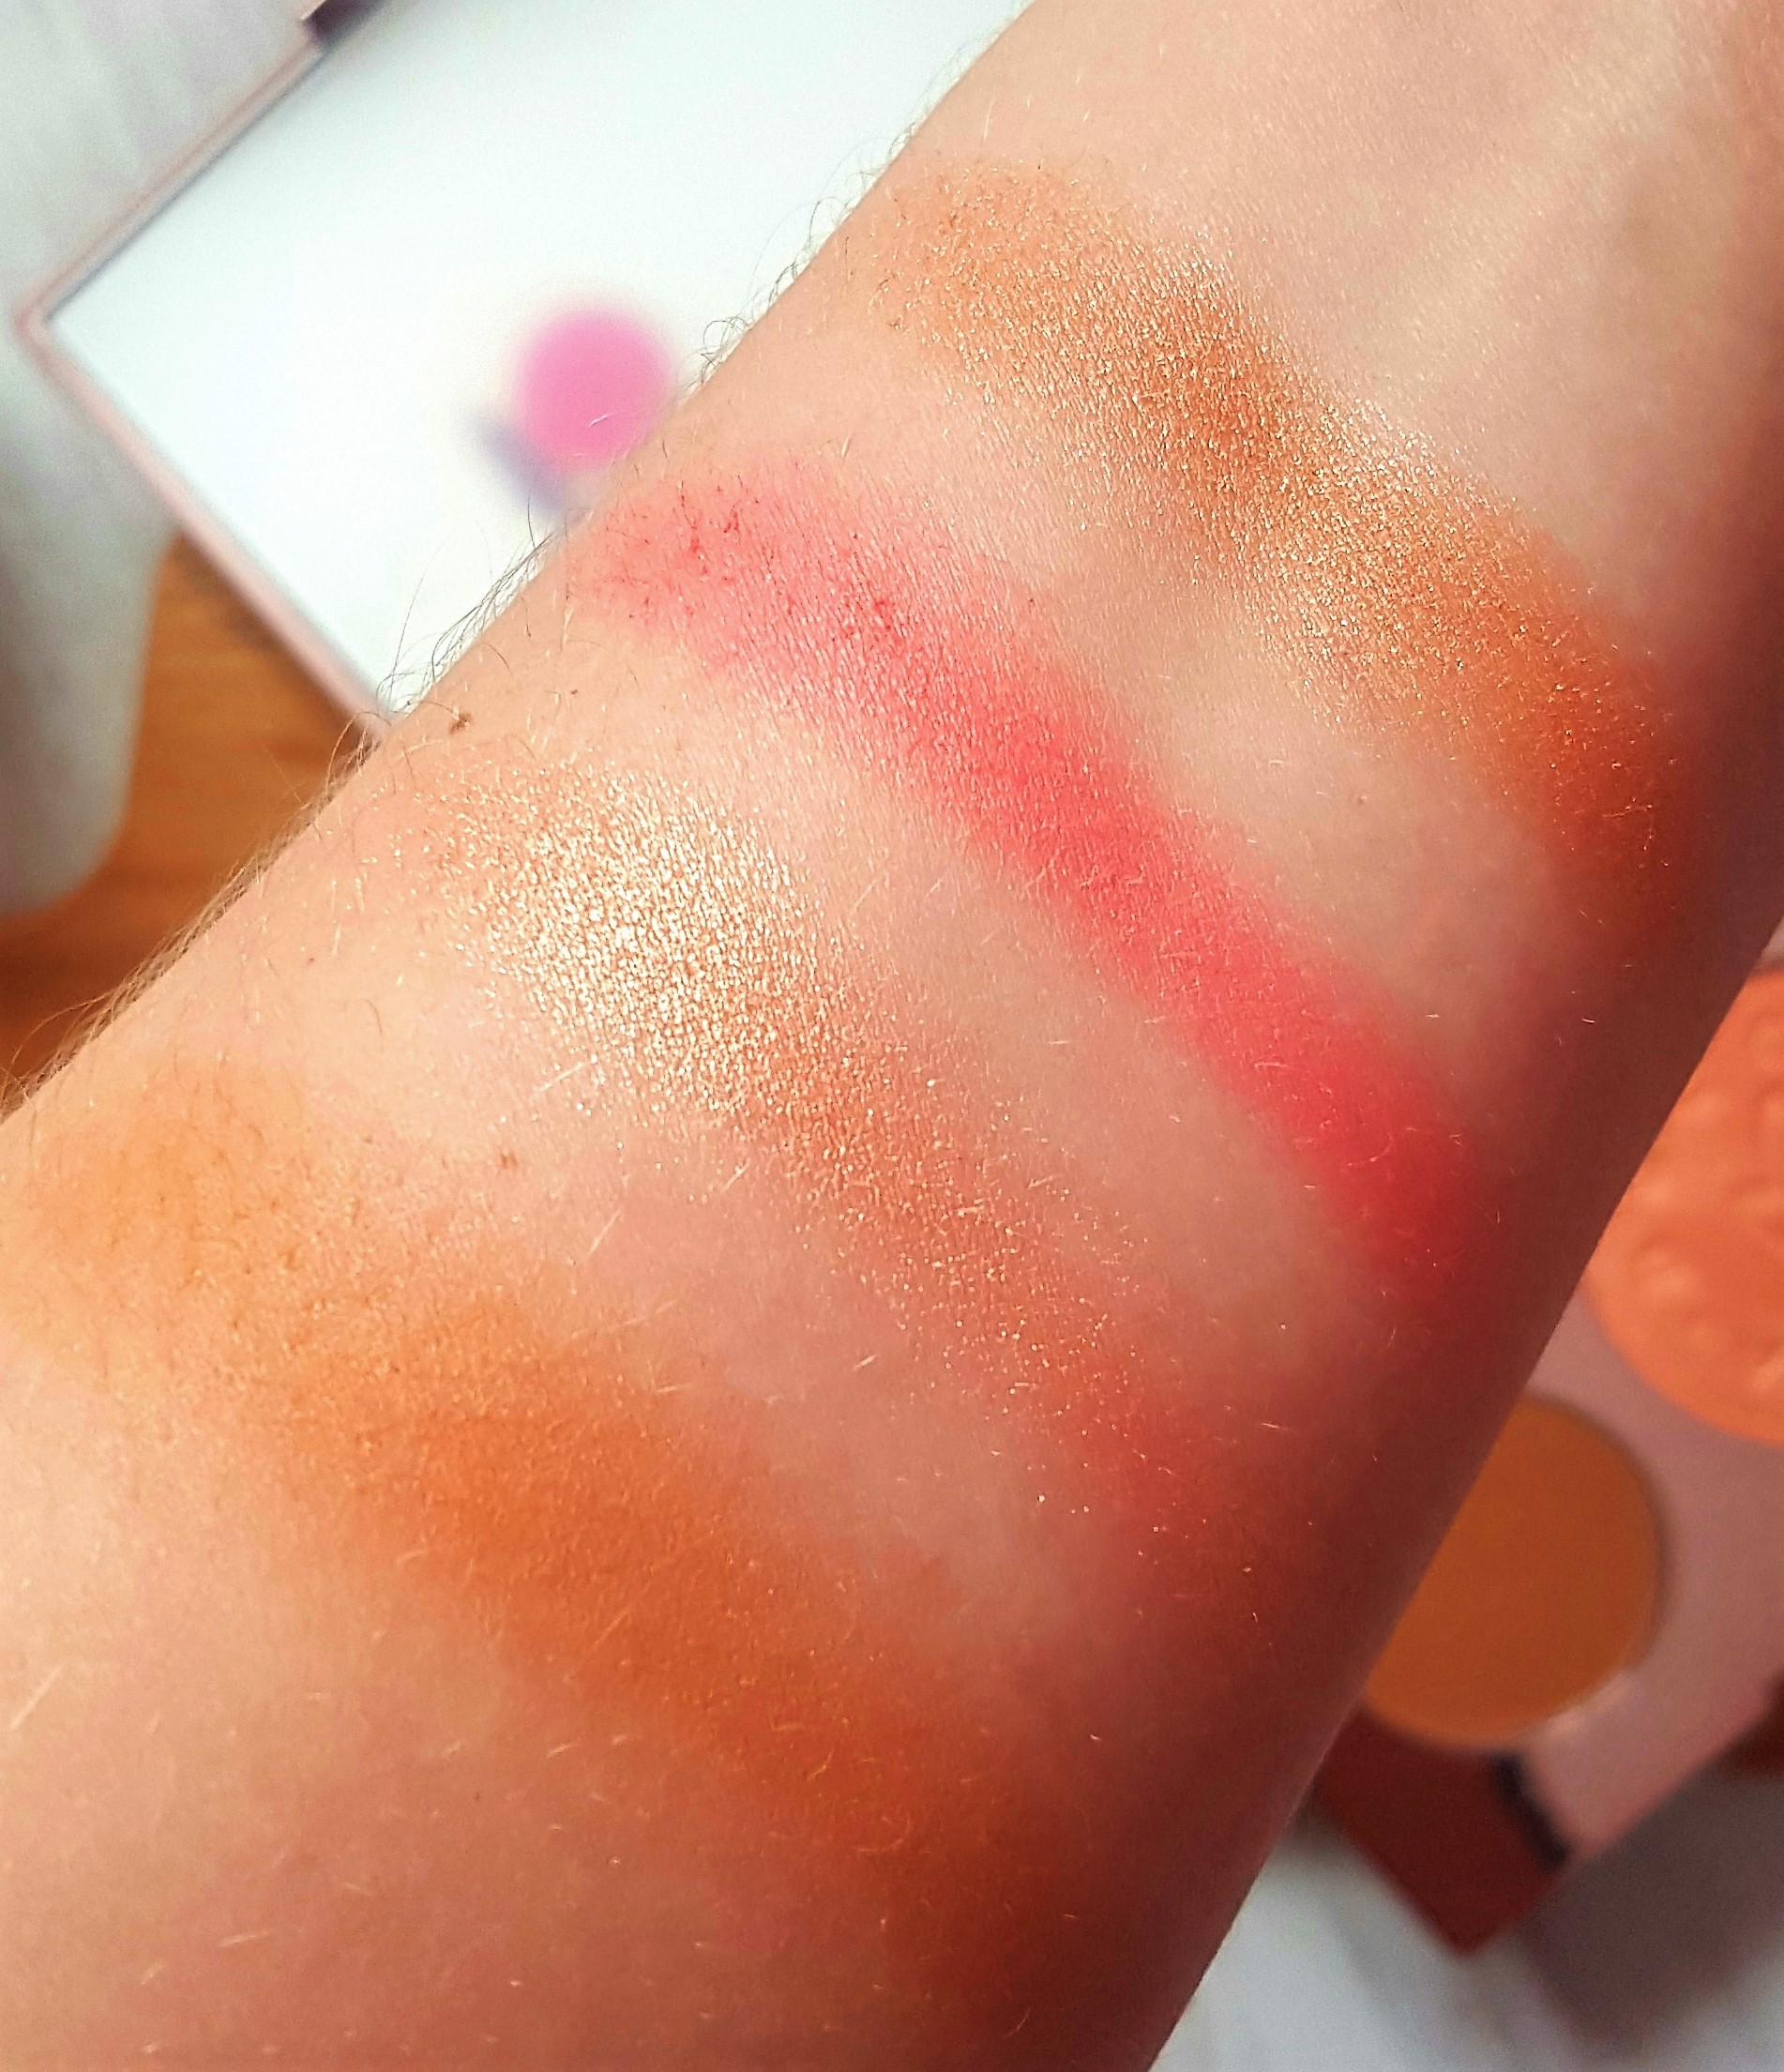 Becca x Chrissy Teigan Glow Palette Review and Swatches 7.jpg